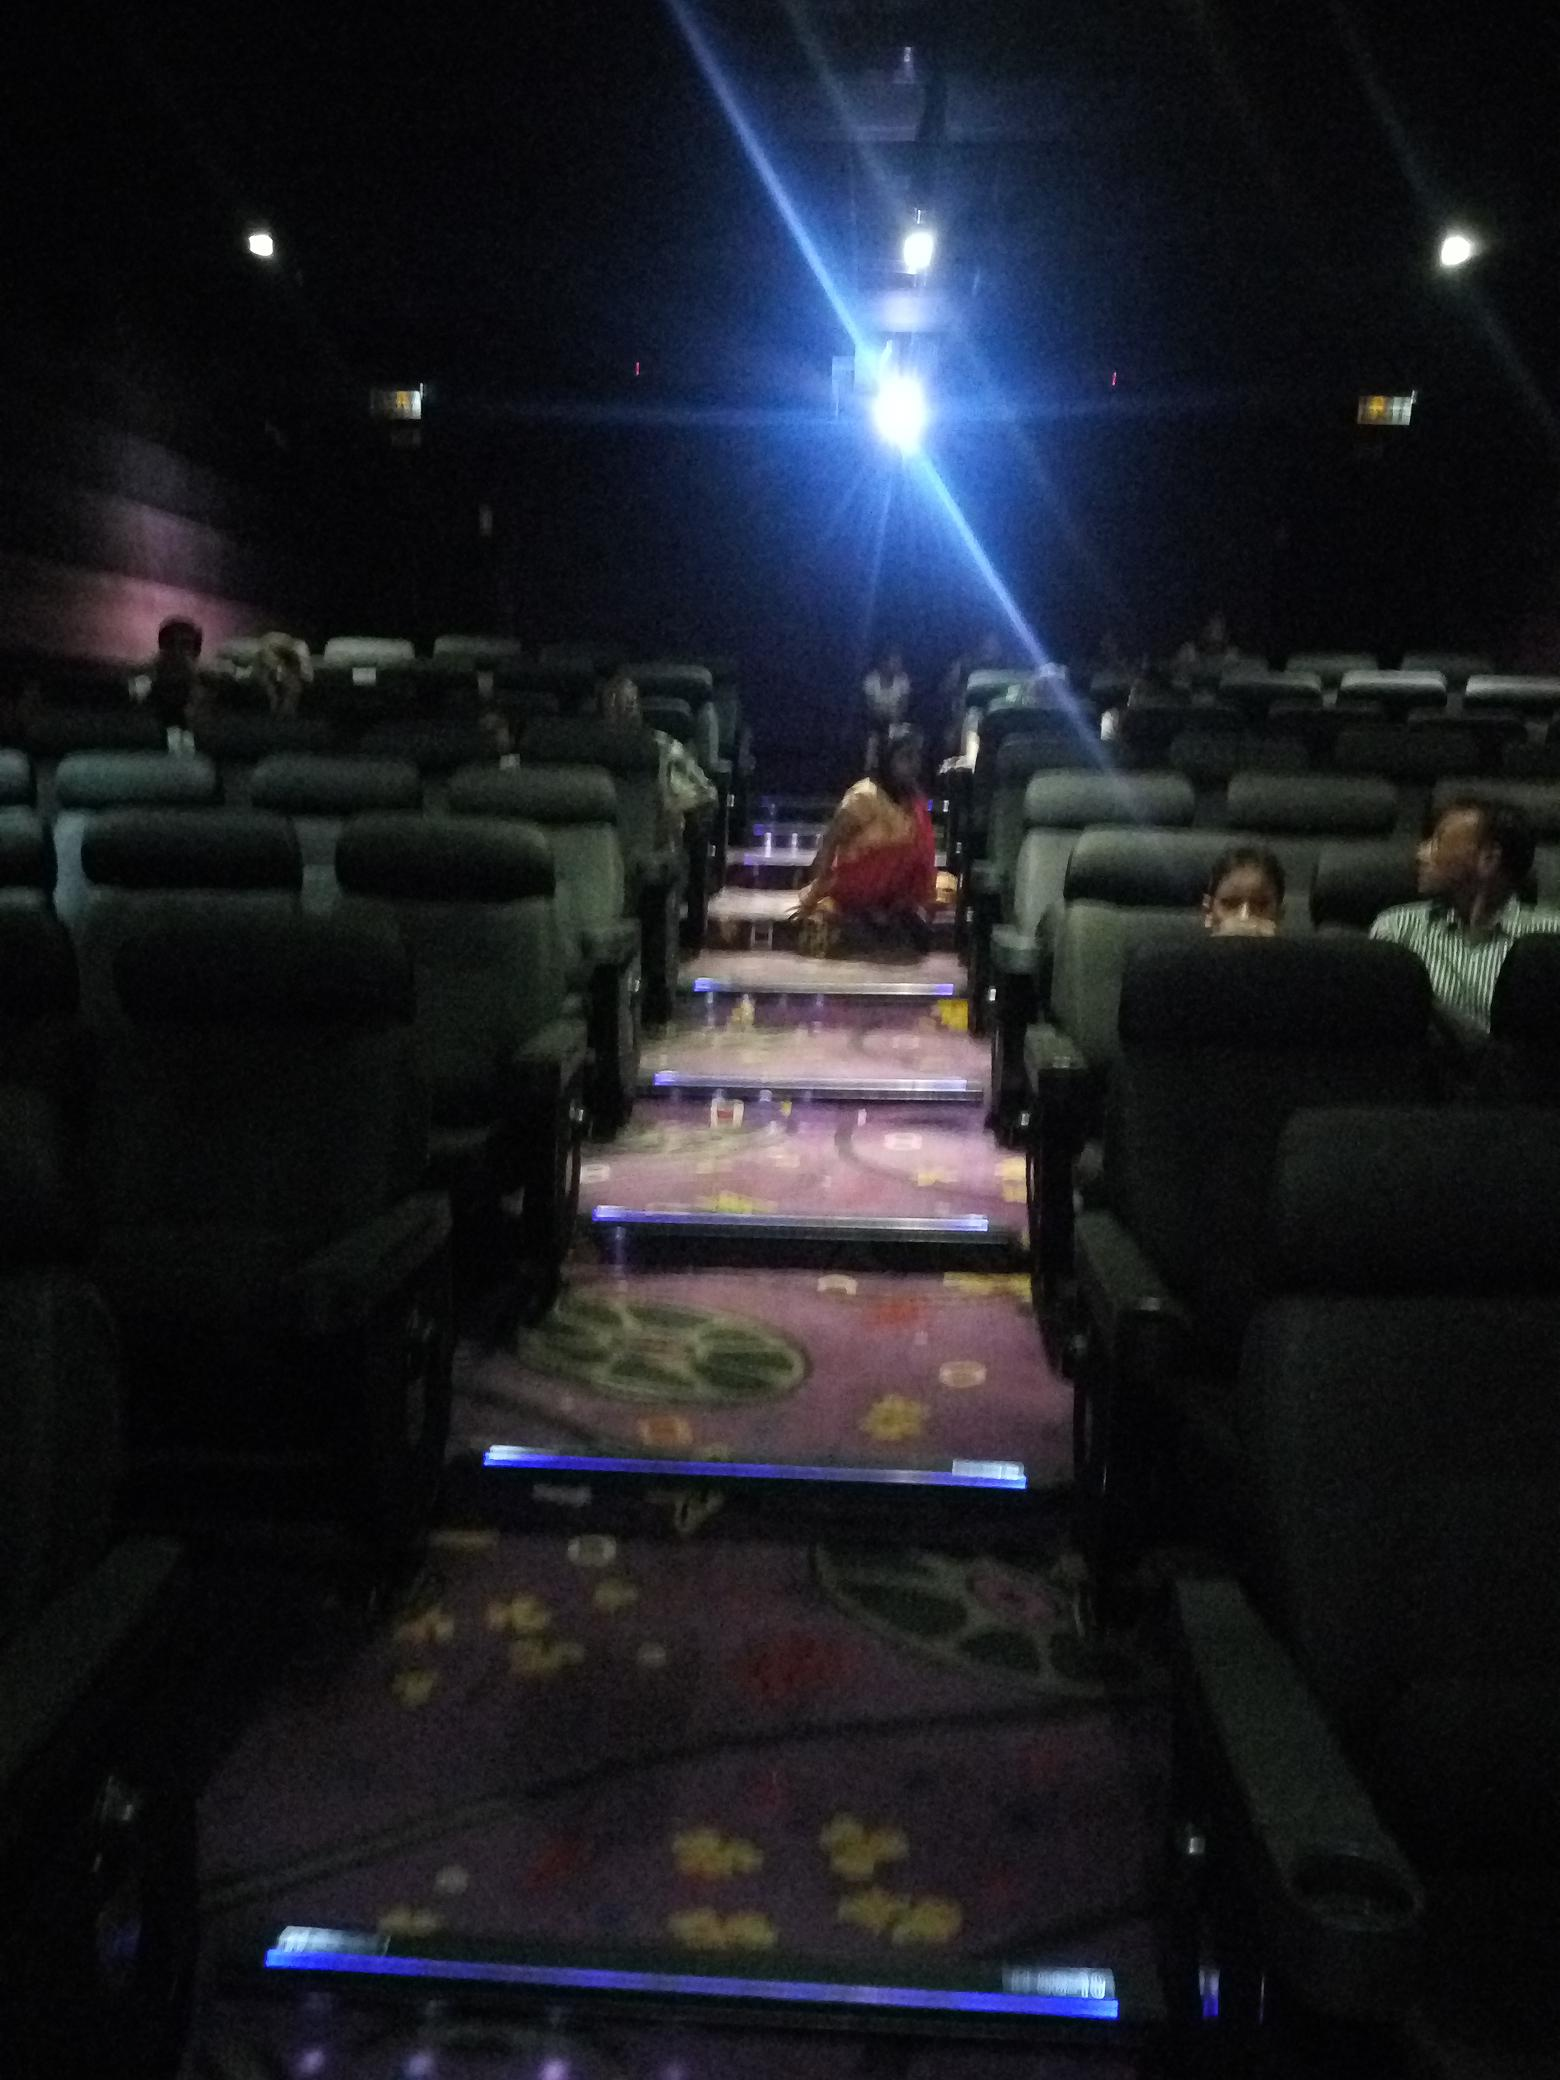 Mukta Cinema hall having more than 9 steps in cinema hall at Centre Square mall Genda Circle Vadodara